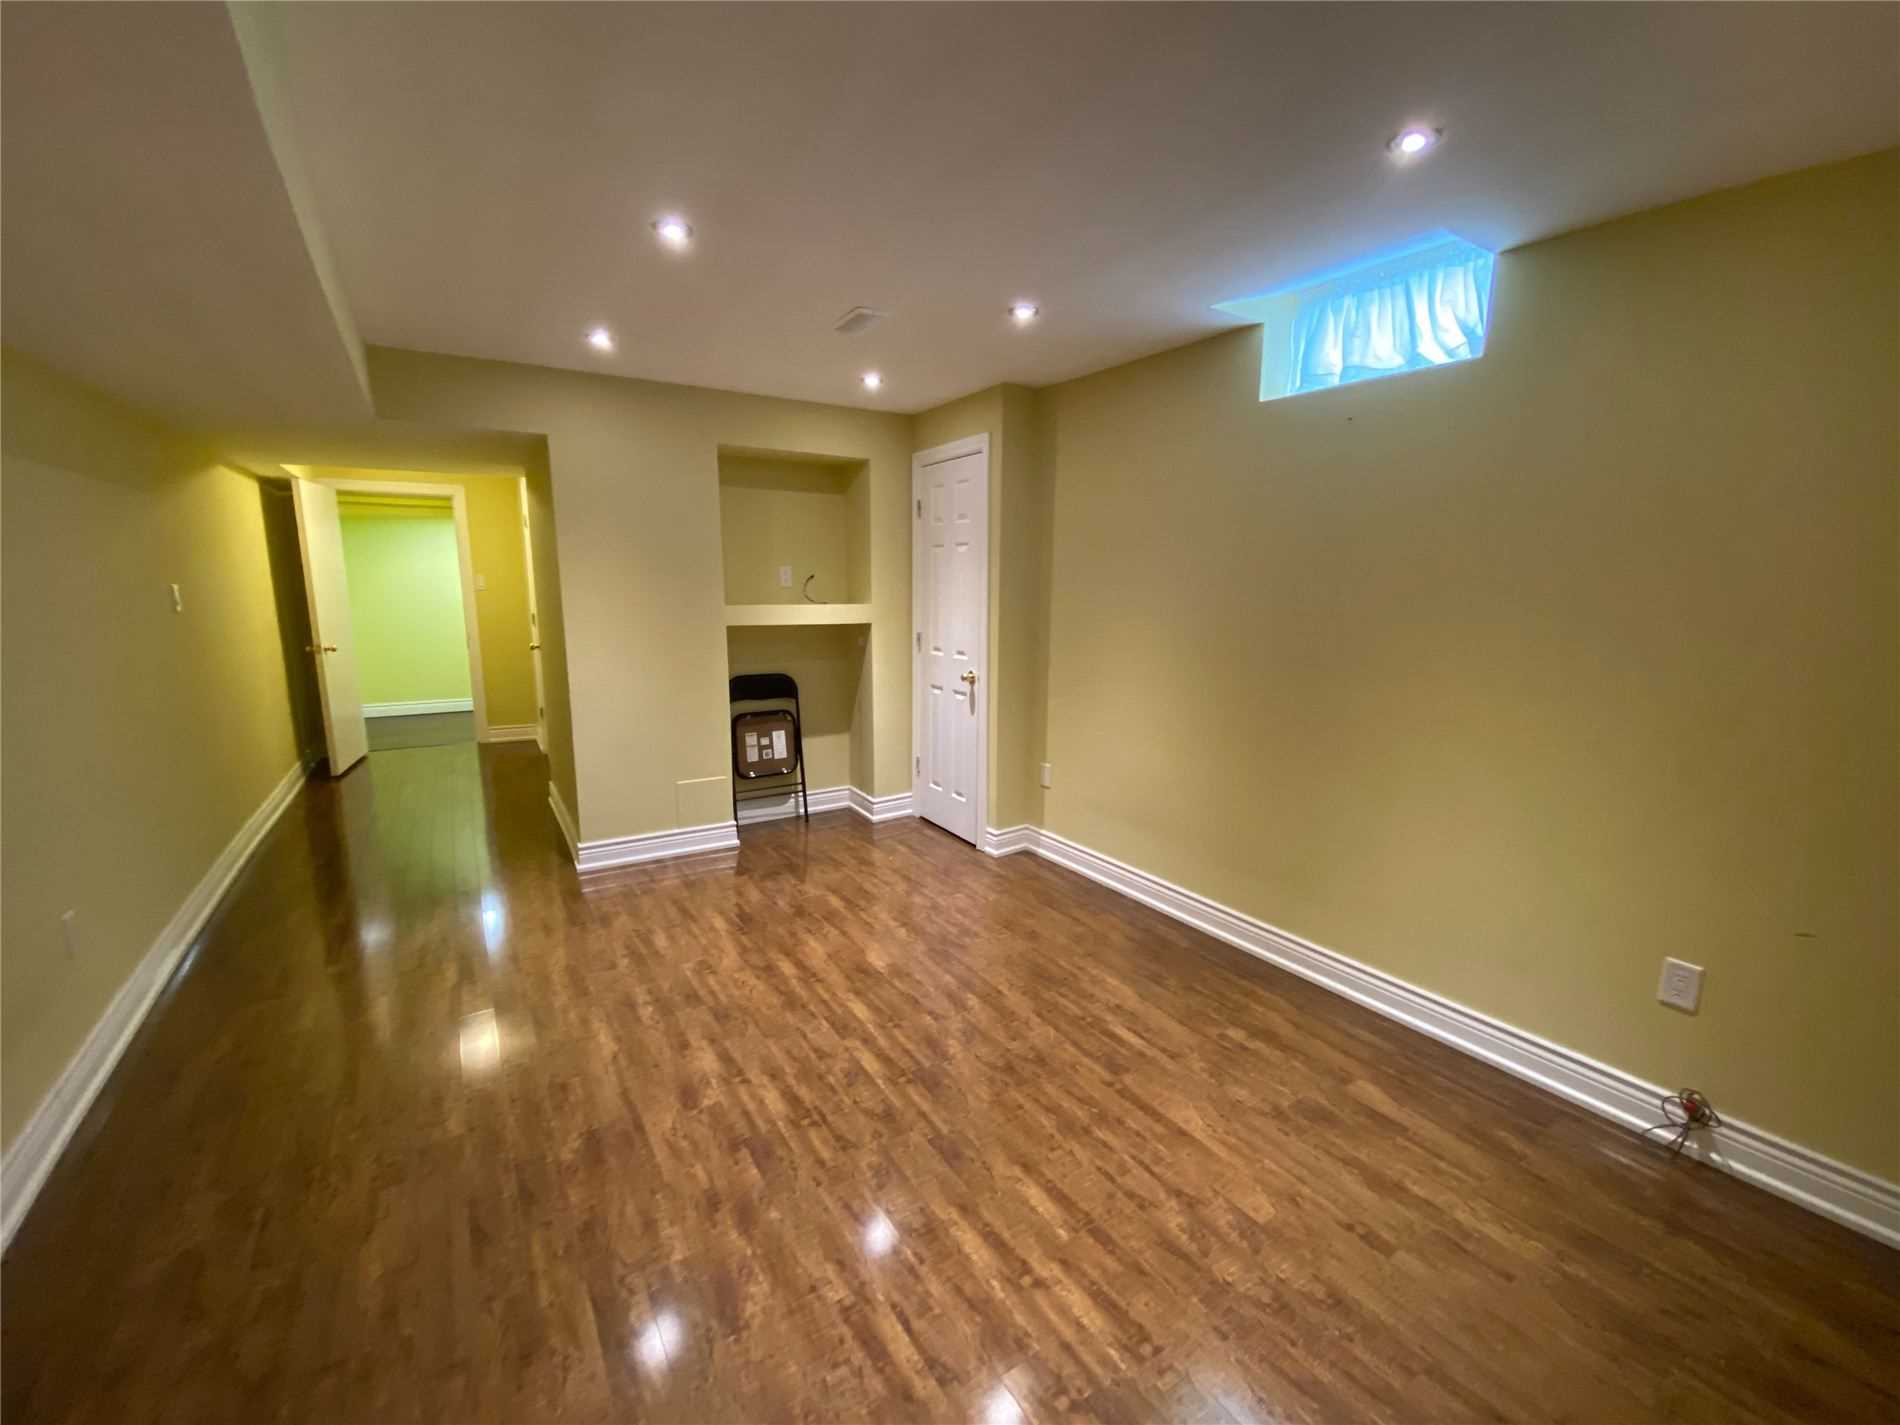 Image 4 of 8 showing inside of 0 Bedroom Semi-Detached Apartment for Lease at 2 Maroon Dr, Richmond Hill L4E5B4